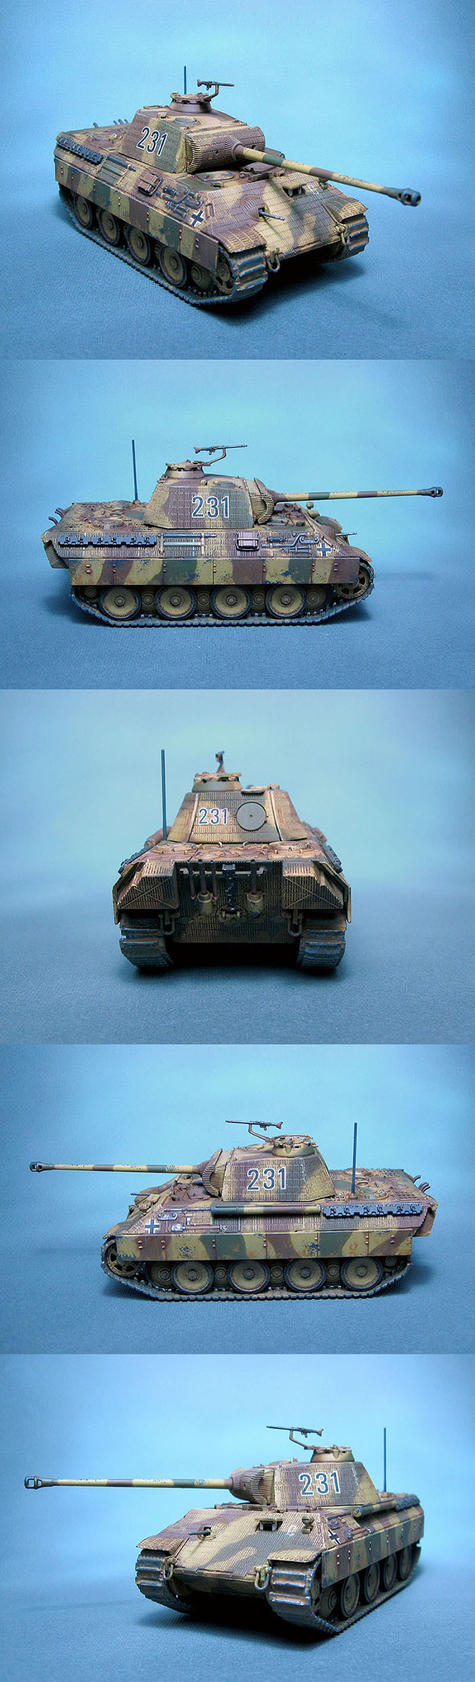 Panther 231 700 by Graveus